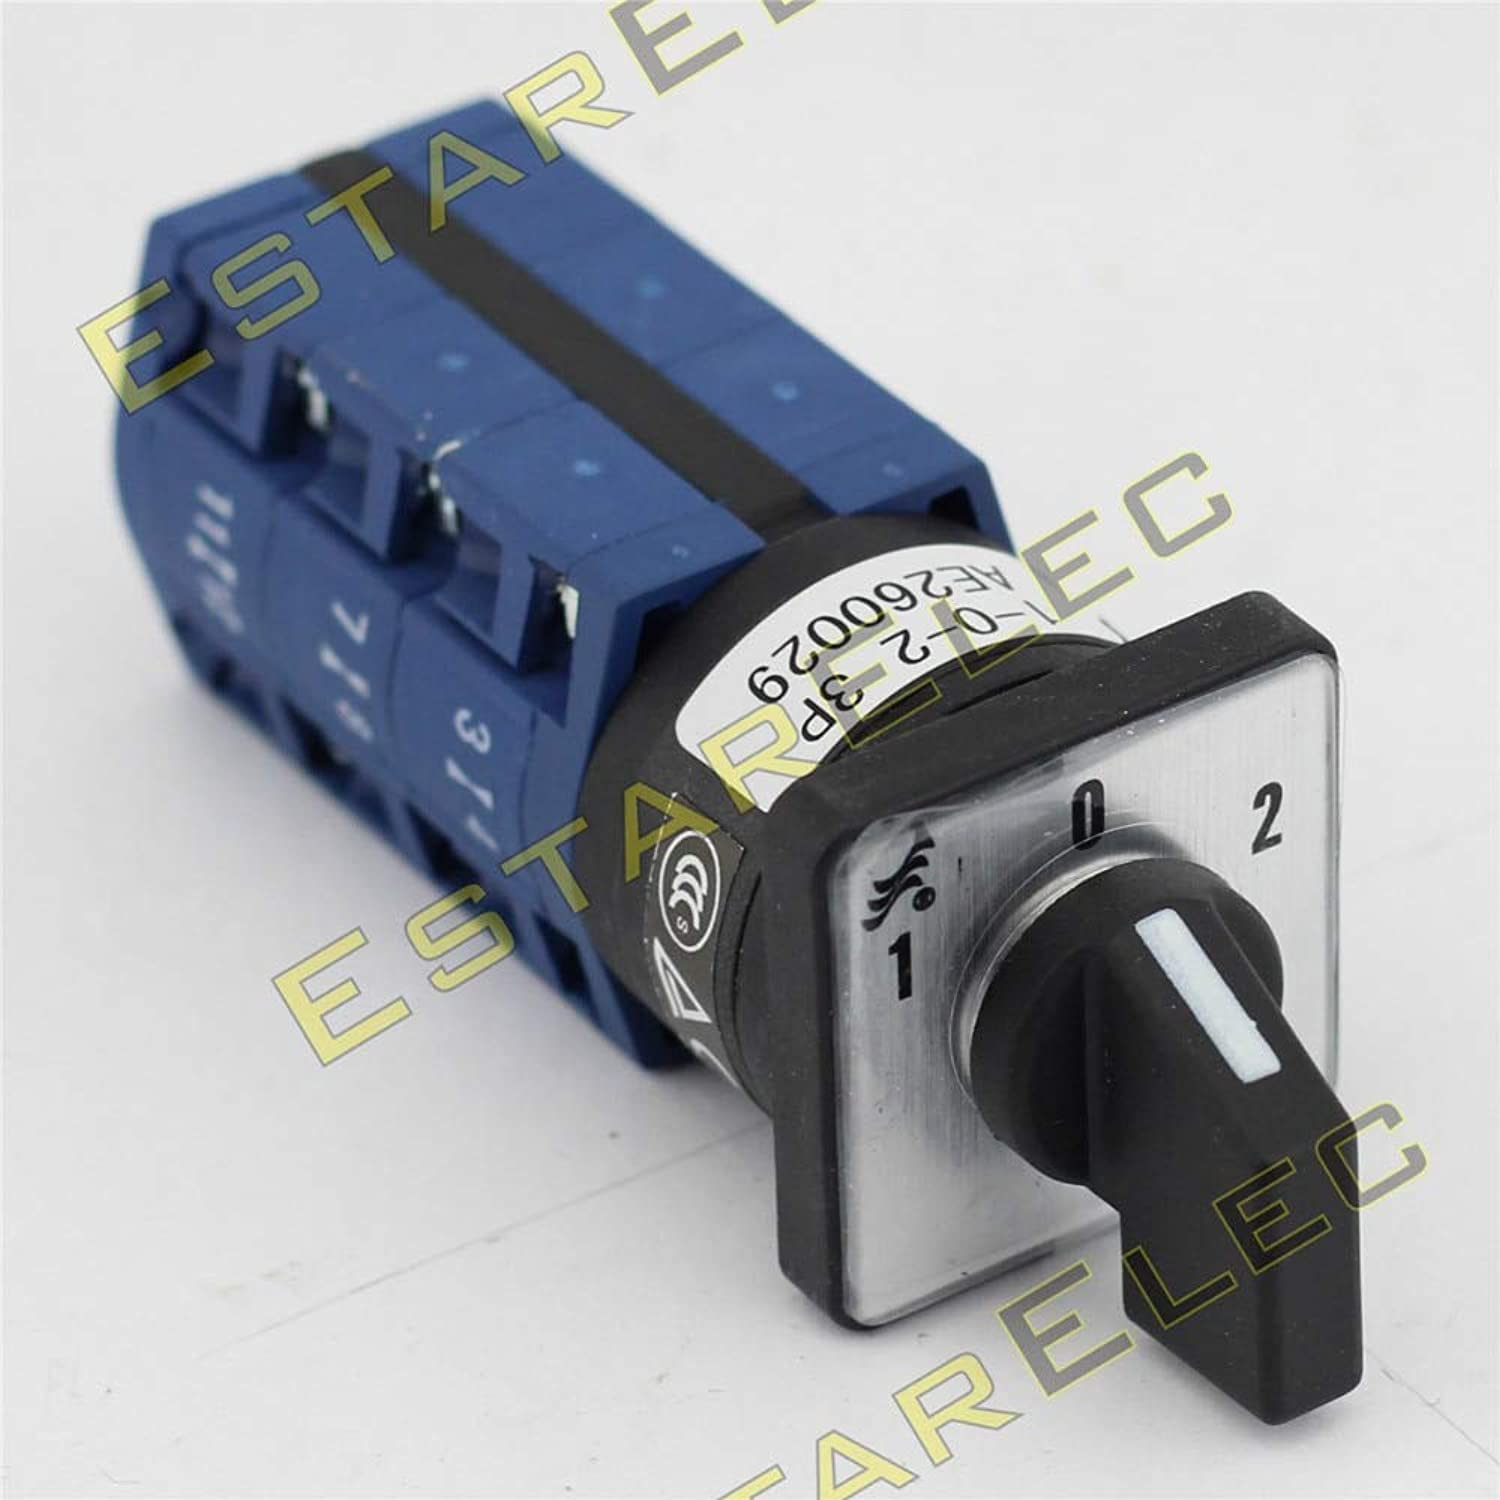 AC 440V Ui 690V 10A Cam Switch Mini Switch 3 Position 4 Poles 16 terminals for Elevator